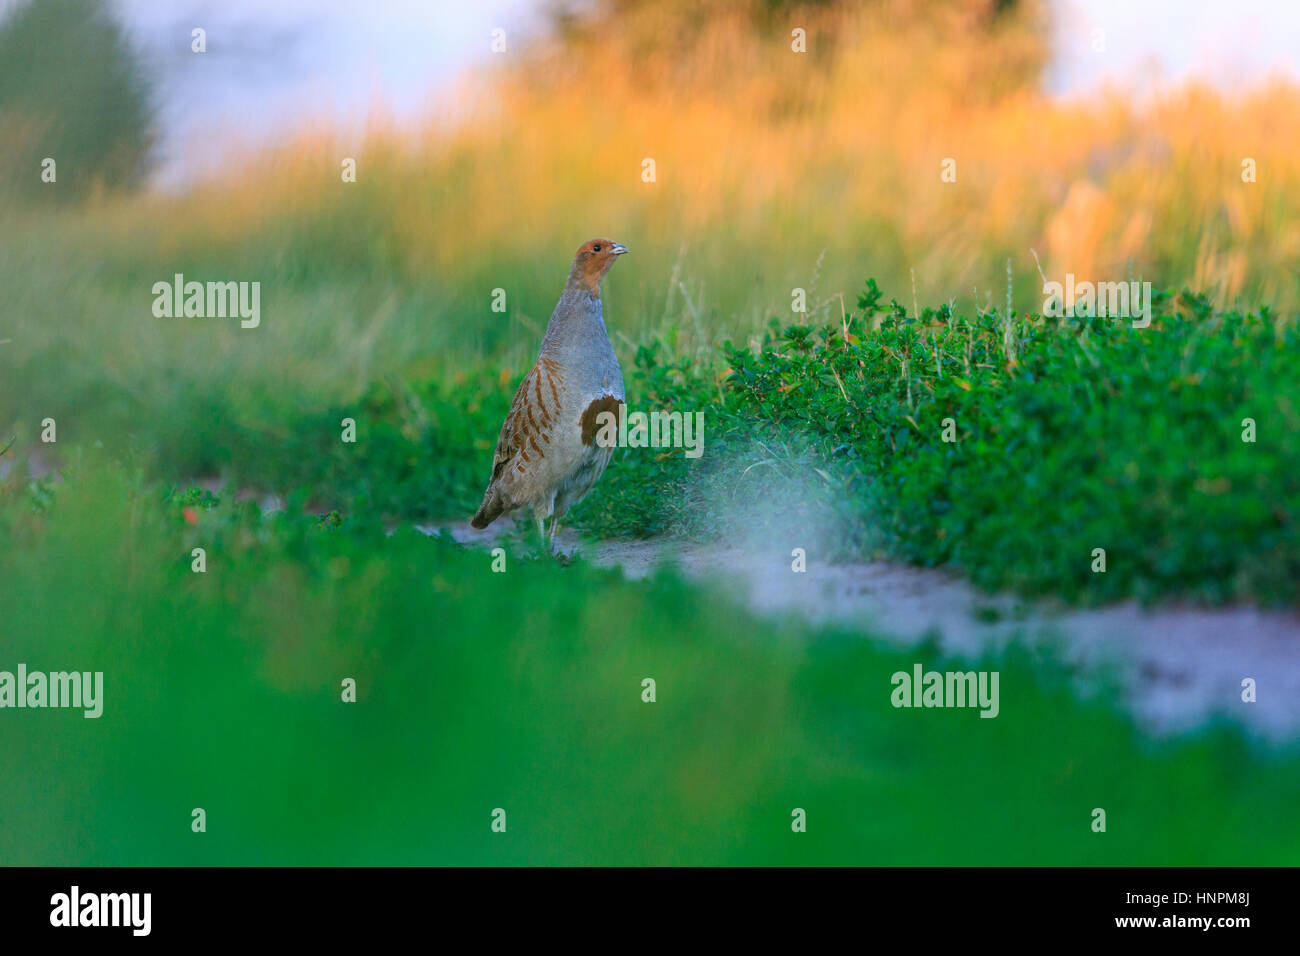 grey partridge defends his territory,sunset, summer, wildlife rare moment - Stock Image